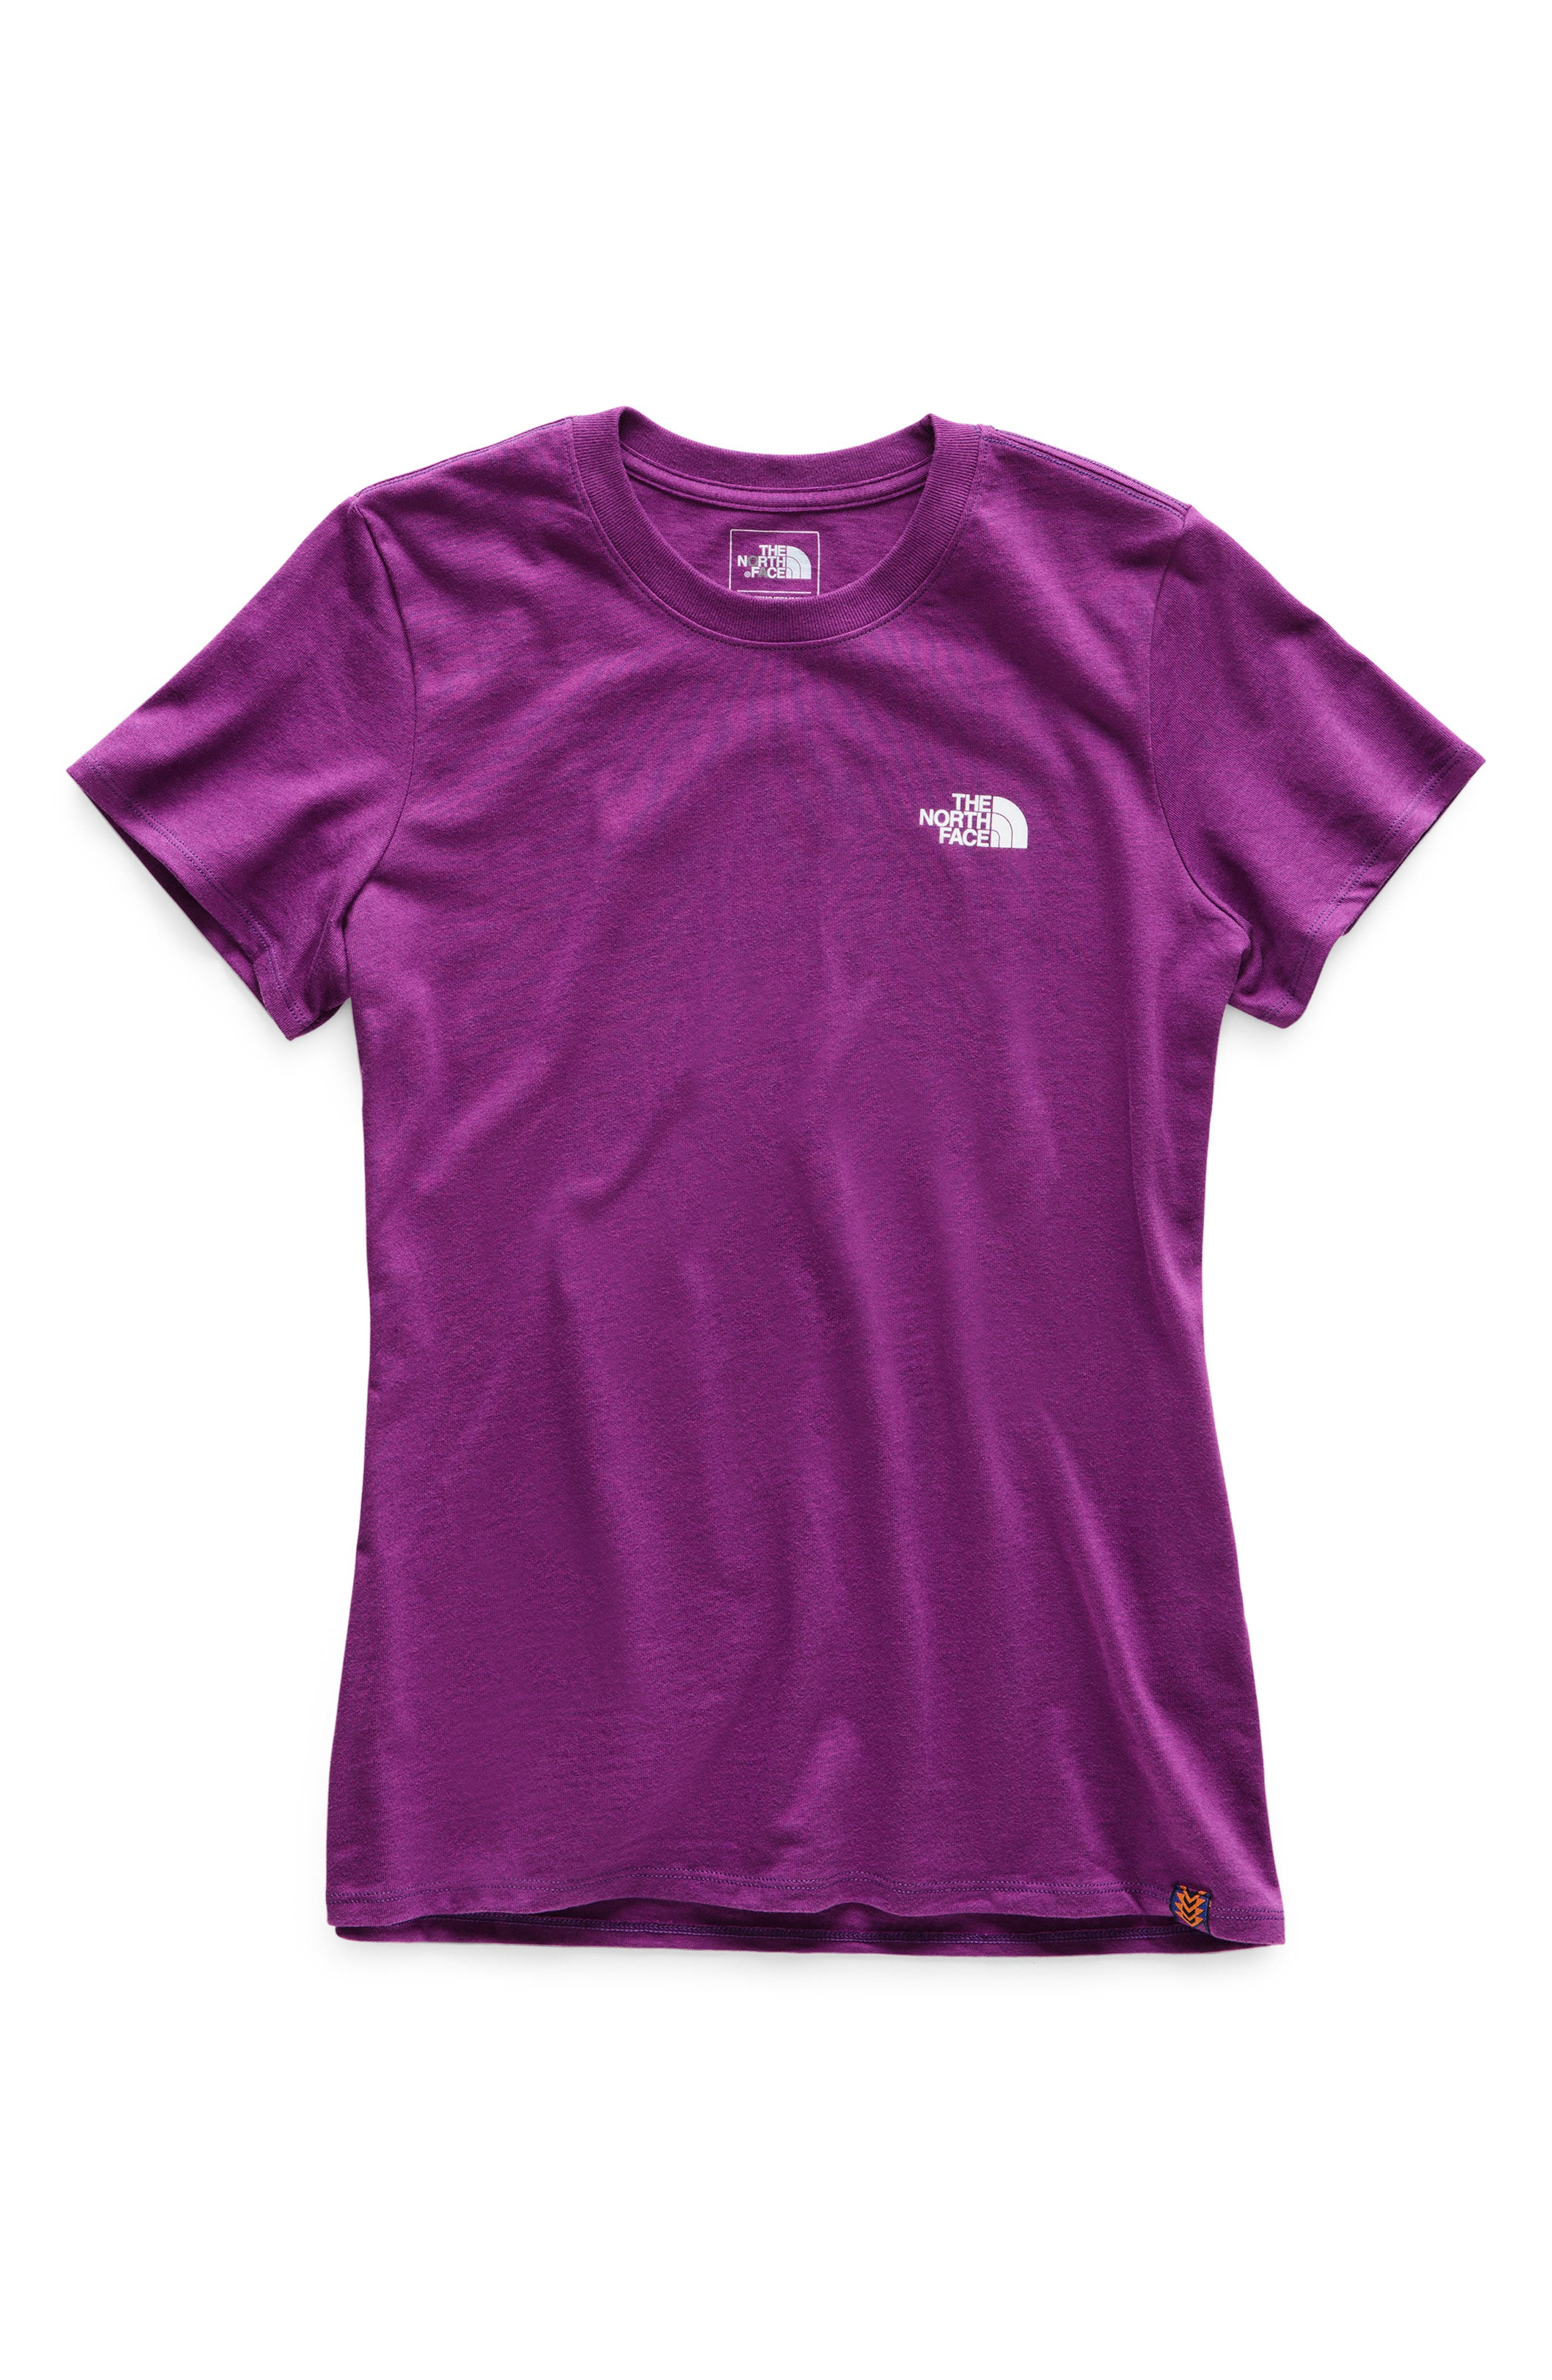 THE NORTH FACE, Red Box Tee, Alternate thumbnail 7, color, Phlox Purple/Aztec Blue